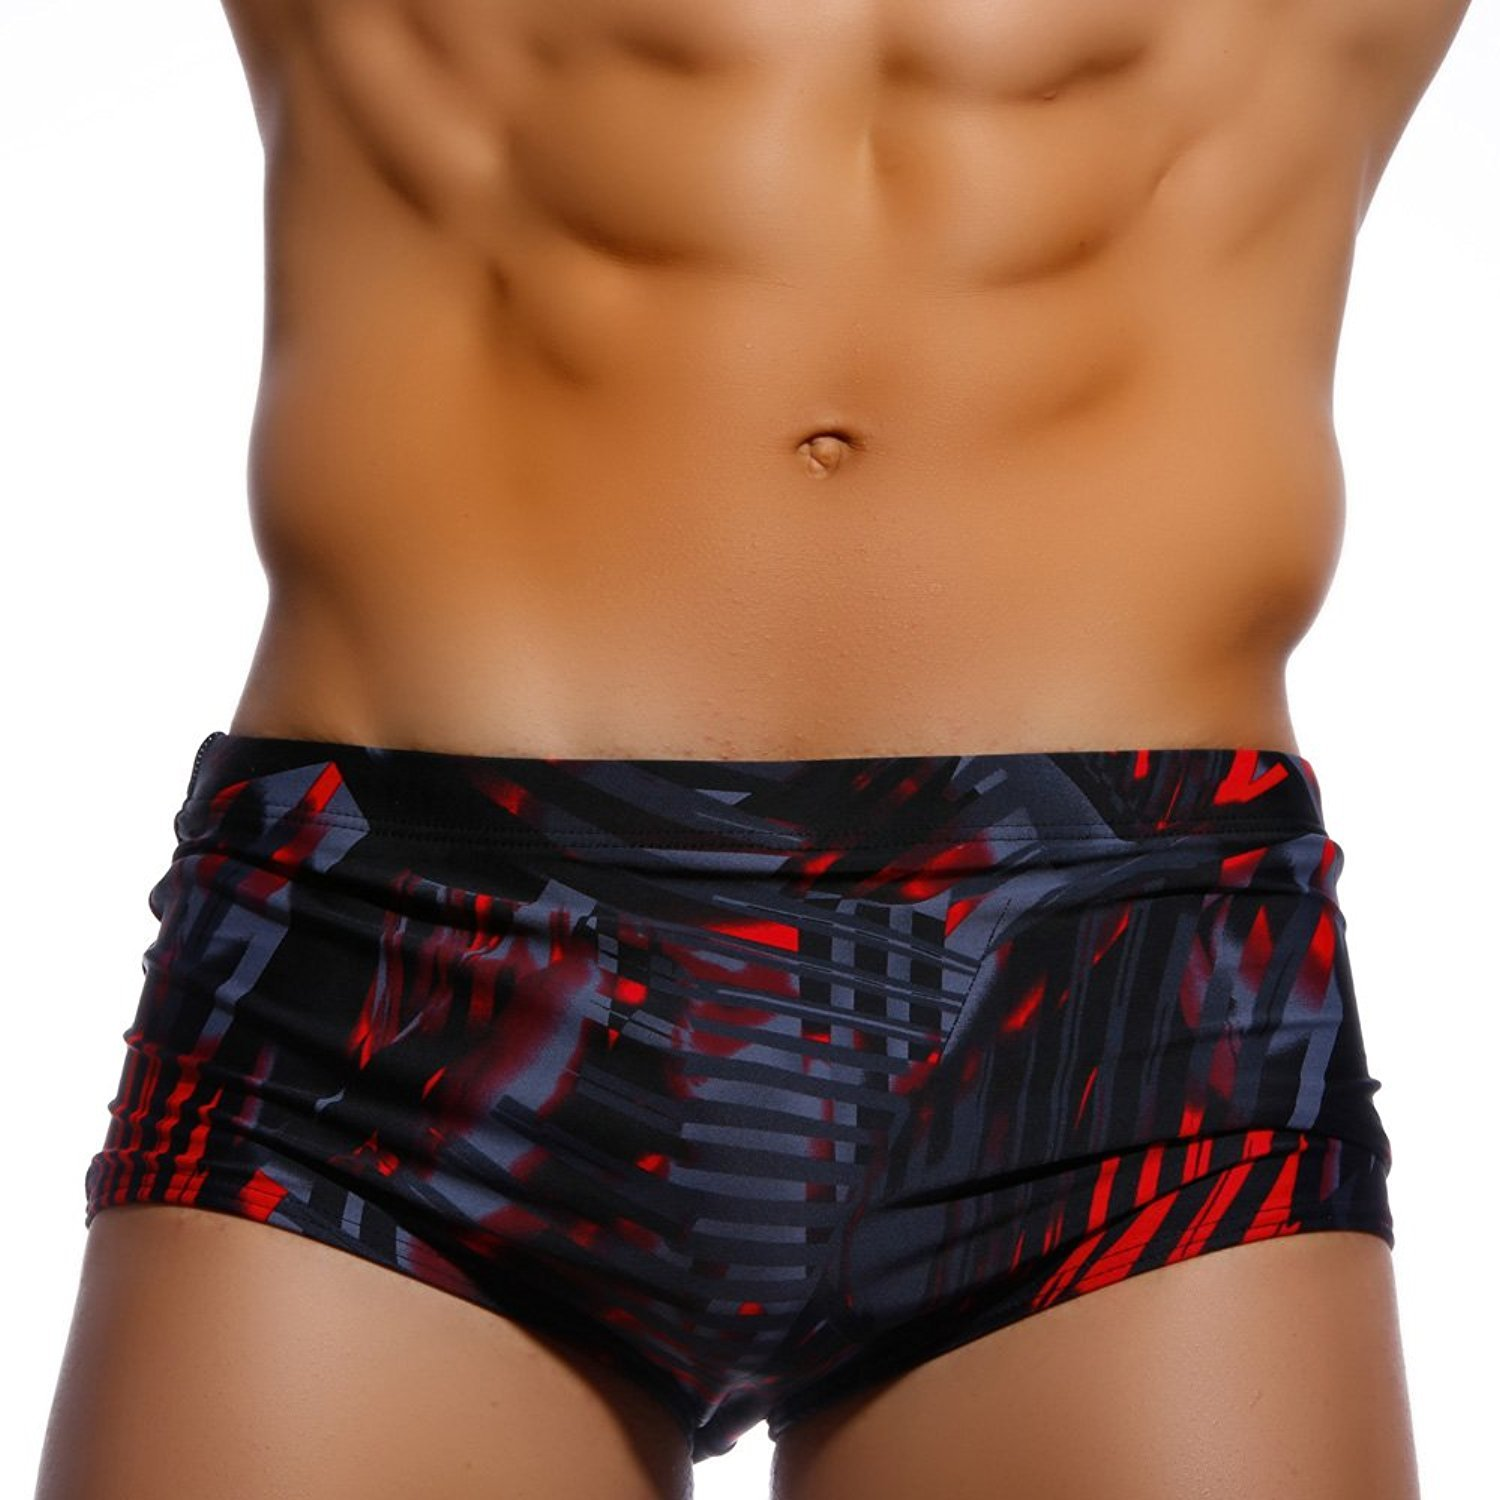 Taddlee Men Swimwear Traditional Cut Swimsuits Swim Bikini Board Shorts Trunks Foshan Xiongfeng Clothing Co. Ltd